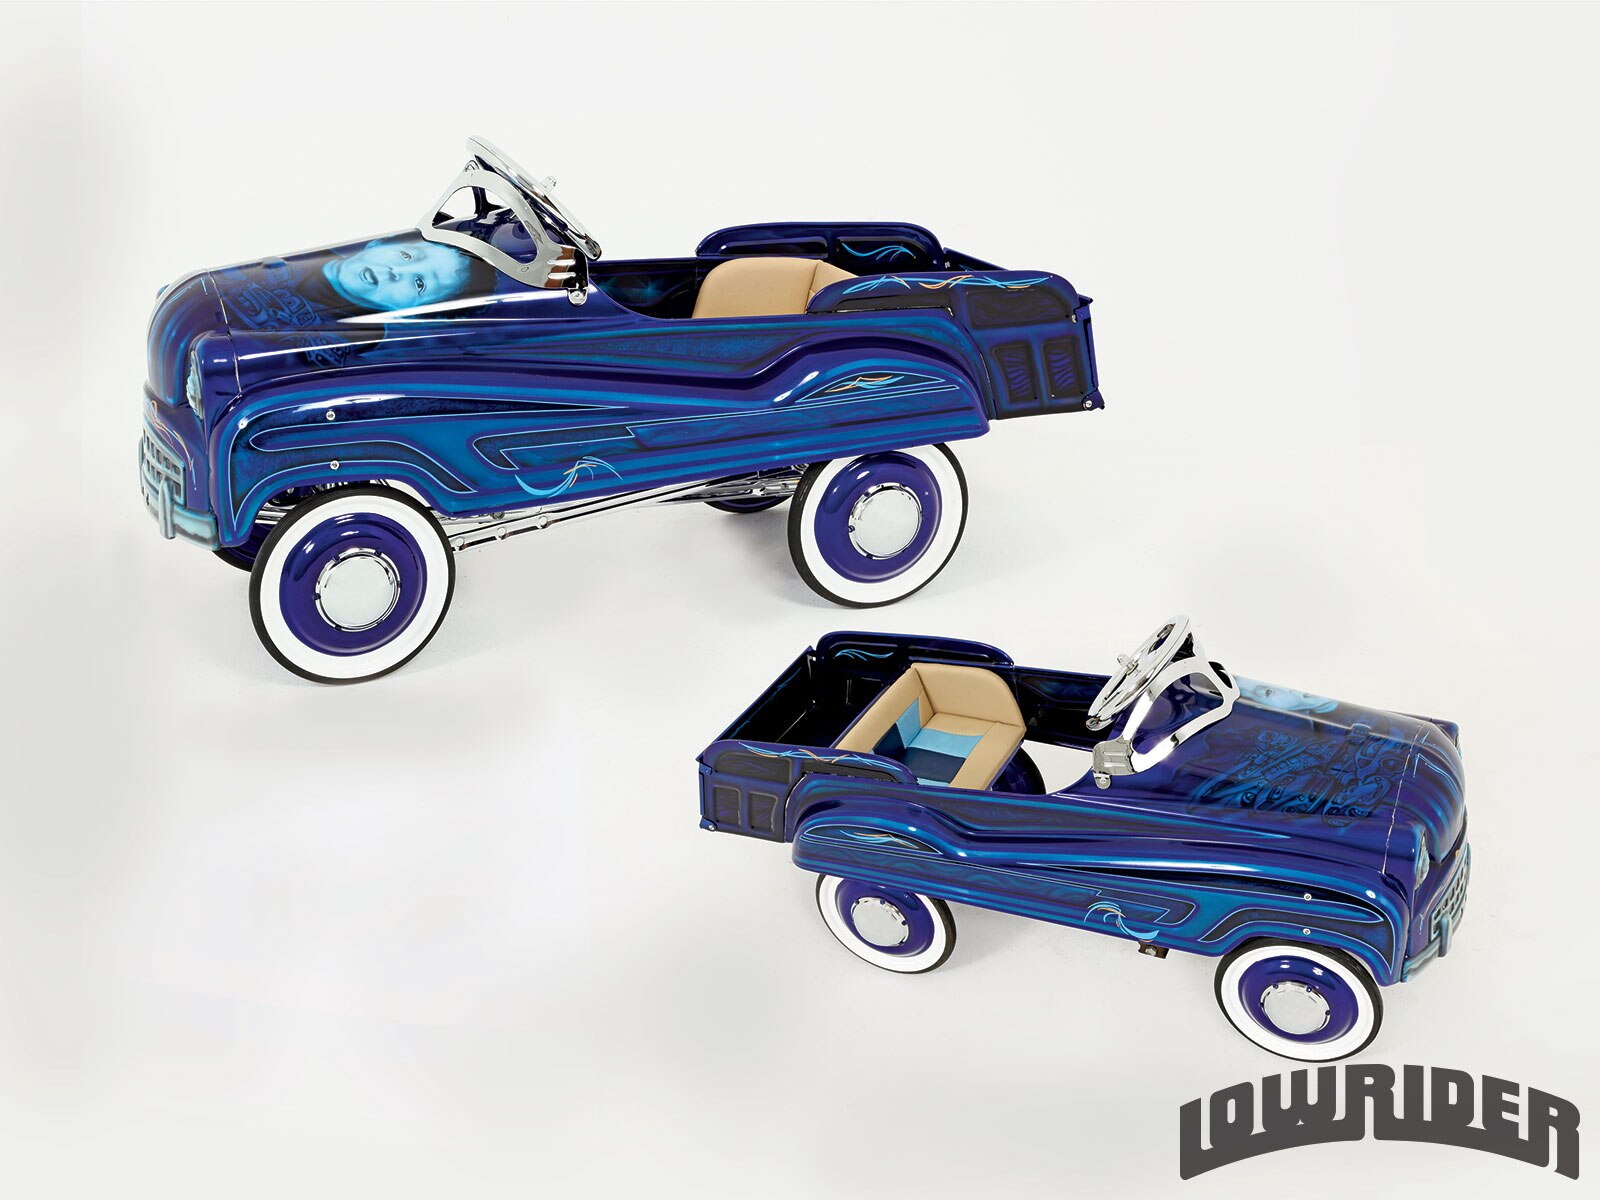 lowrider-pedal-car-right-and-left-side-views2